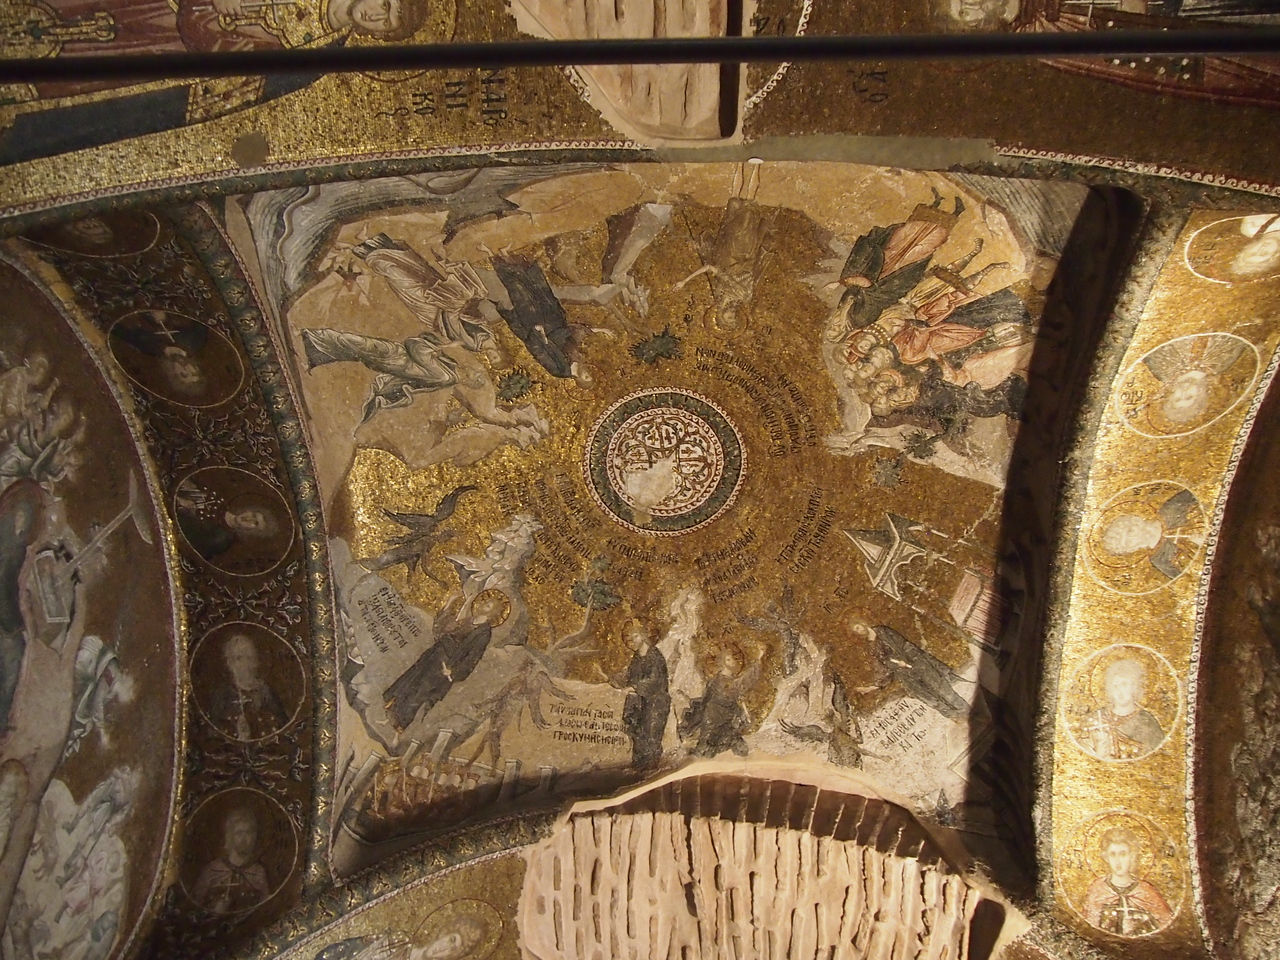 Mosaics and frescoes at the Chora Church/Kariye Museum